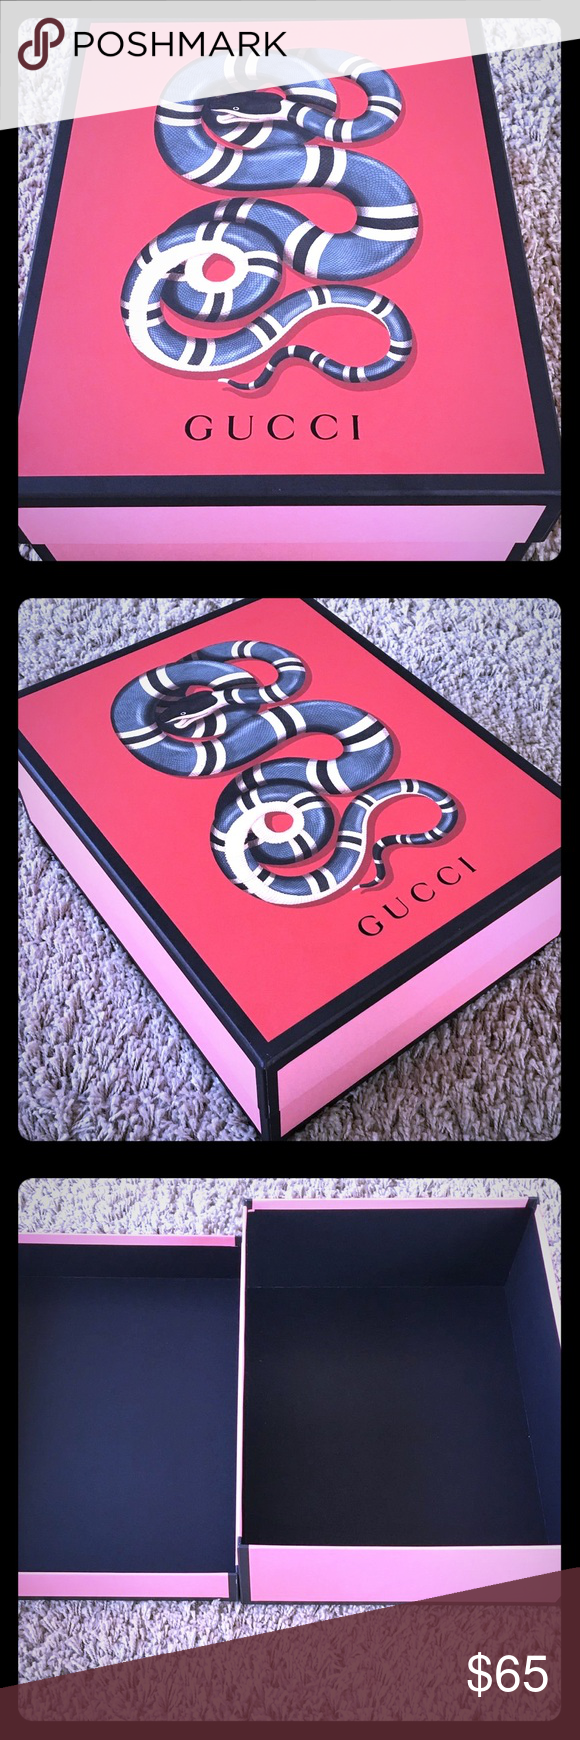 62125e4b98a Gucci New Collection Snake Pink   Red Box Gucci New Collection Snake Pink    Red Empty Shoe  Gift Box - 12x11x4.25 - This box was for shoes .